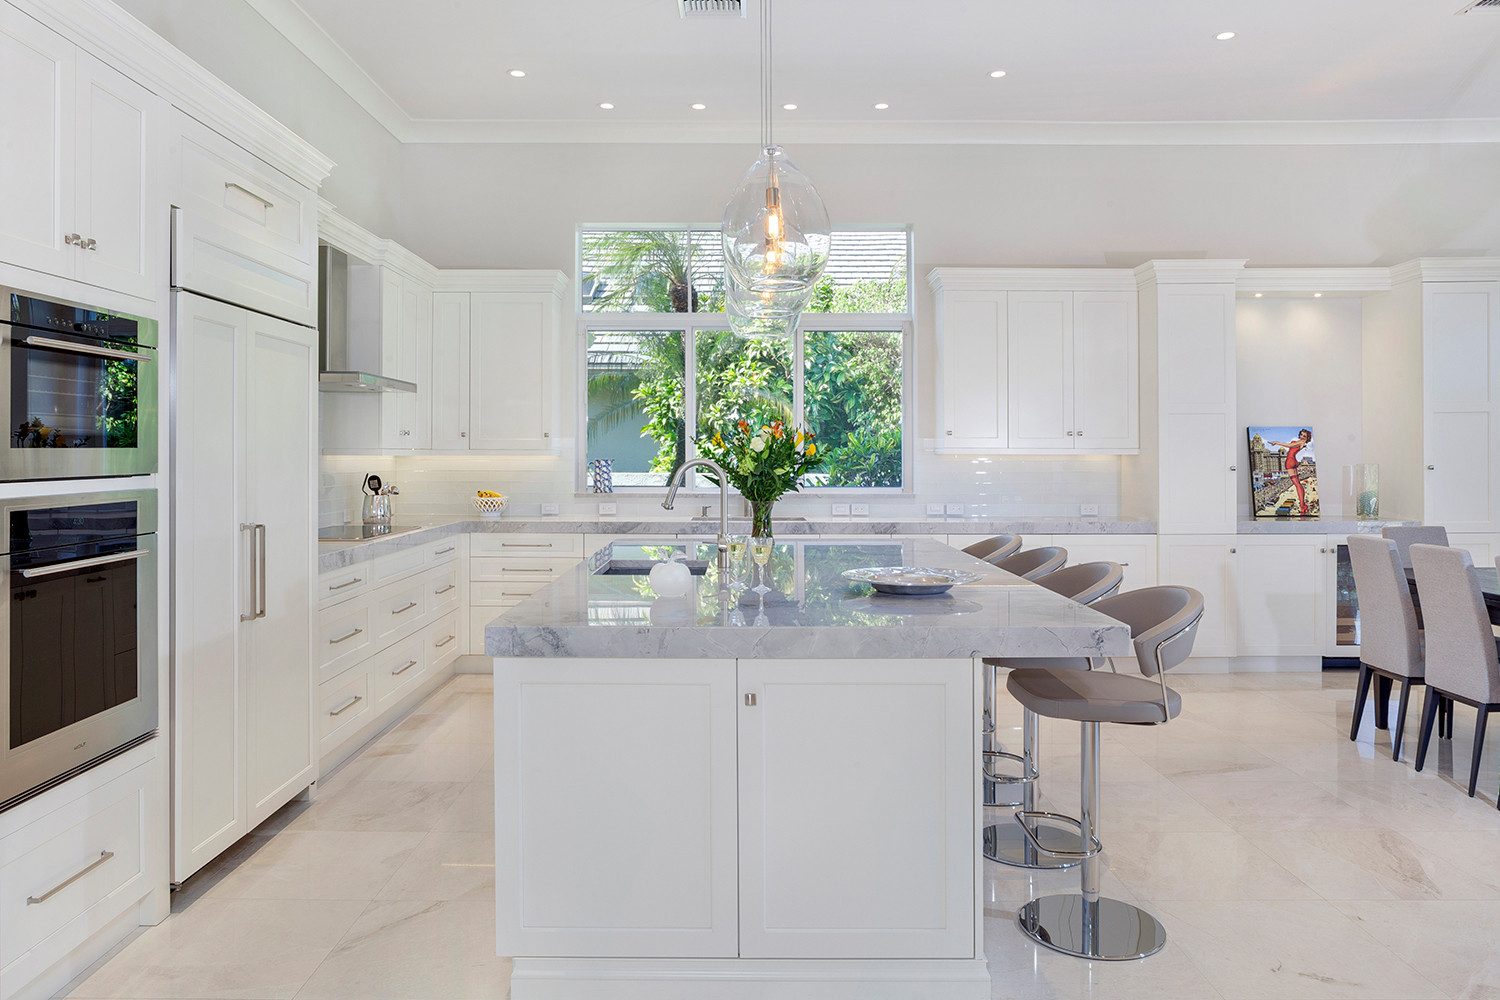 75 Beautiful White Marble Floor Kitchen Pictures Ideas July 2021 Houzz